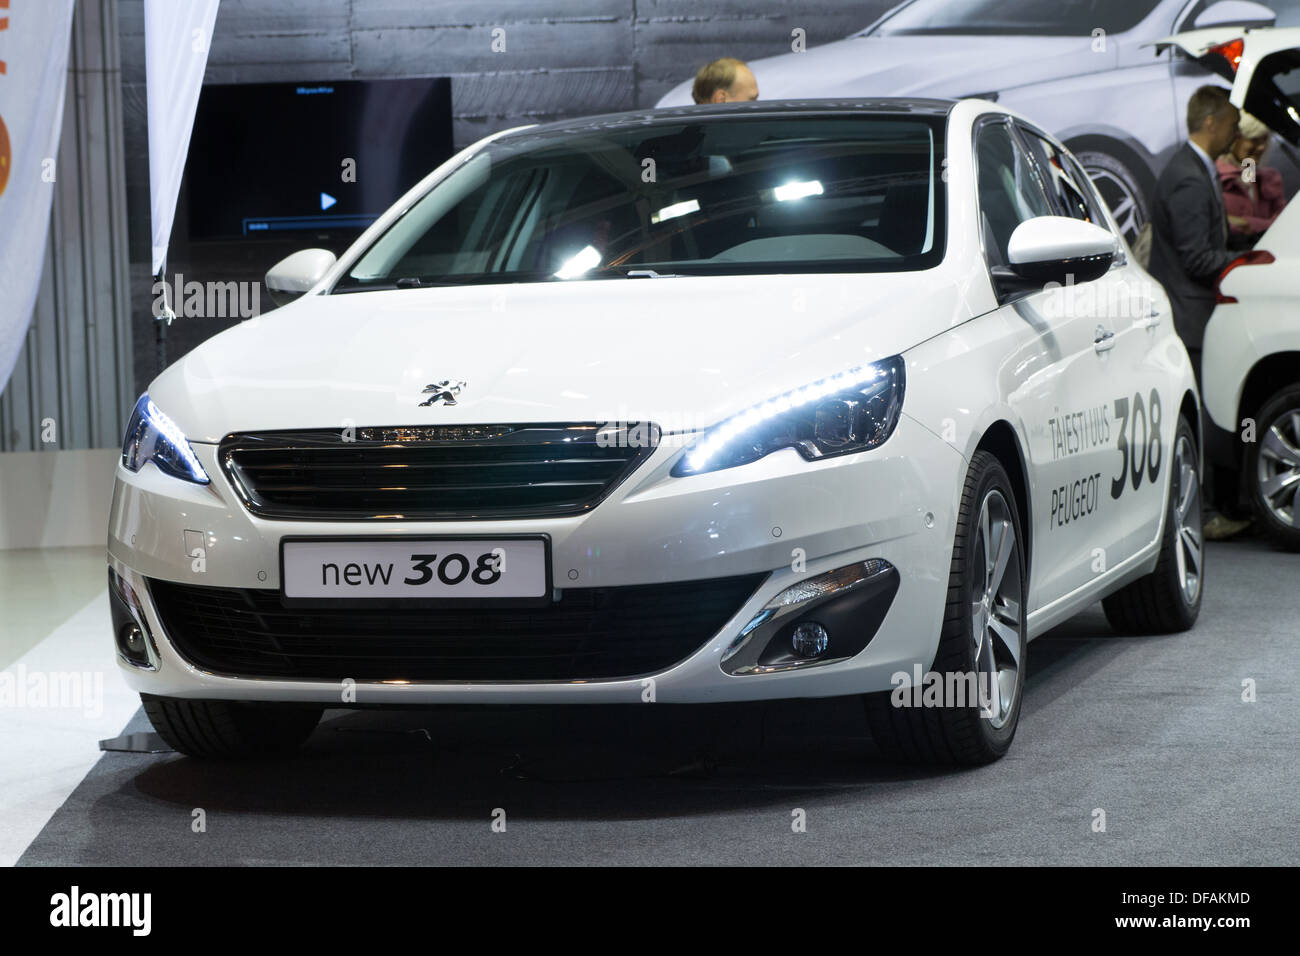 Peugeot 308 family car - Peugeot is a respected French car Stock ...